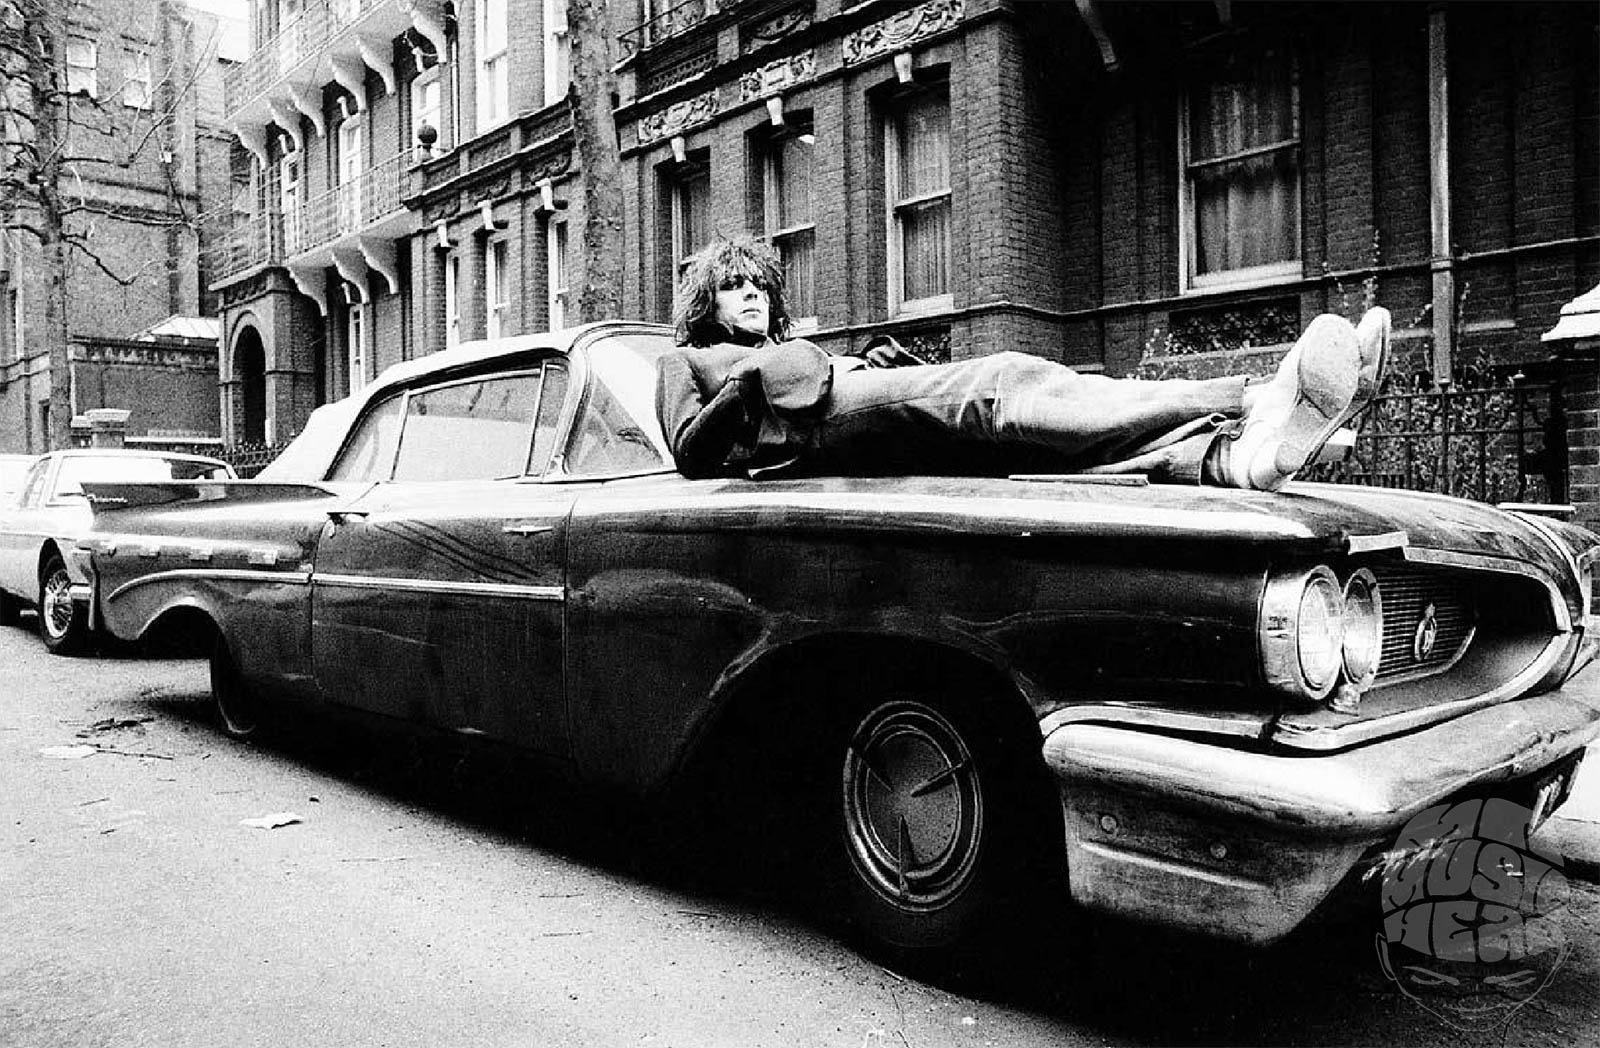 mick rock_Syd Barrett_car.jpg